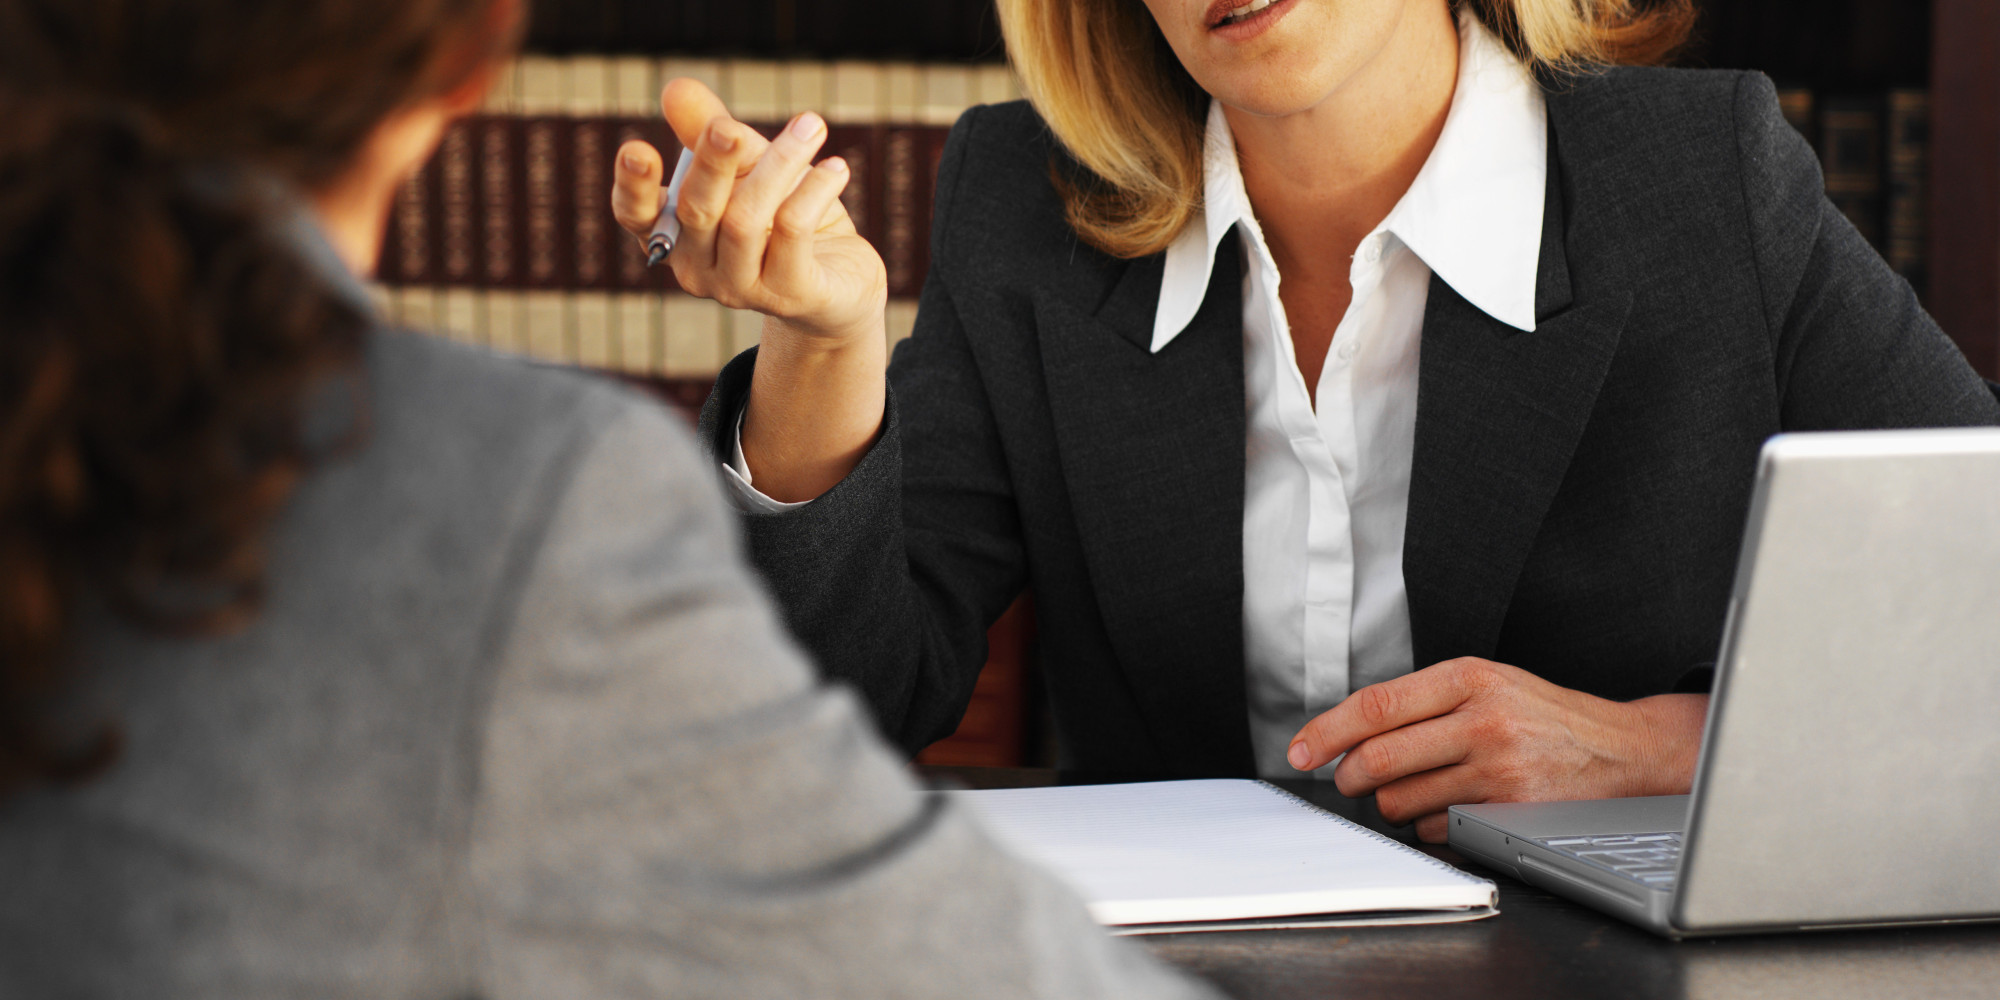 FIND THE BEST ATTORNEY TO SOLVE THE INJURIES EFFECTIVELY